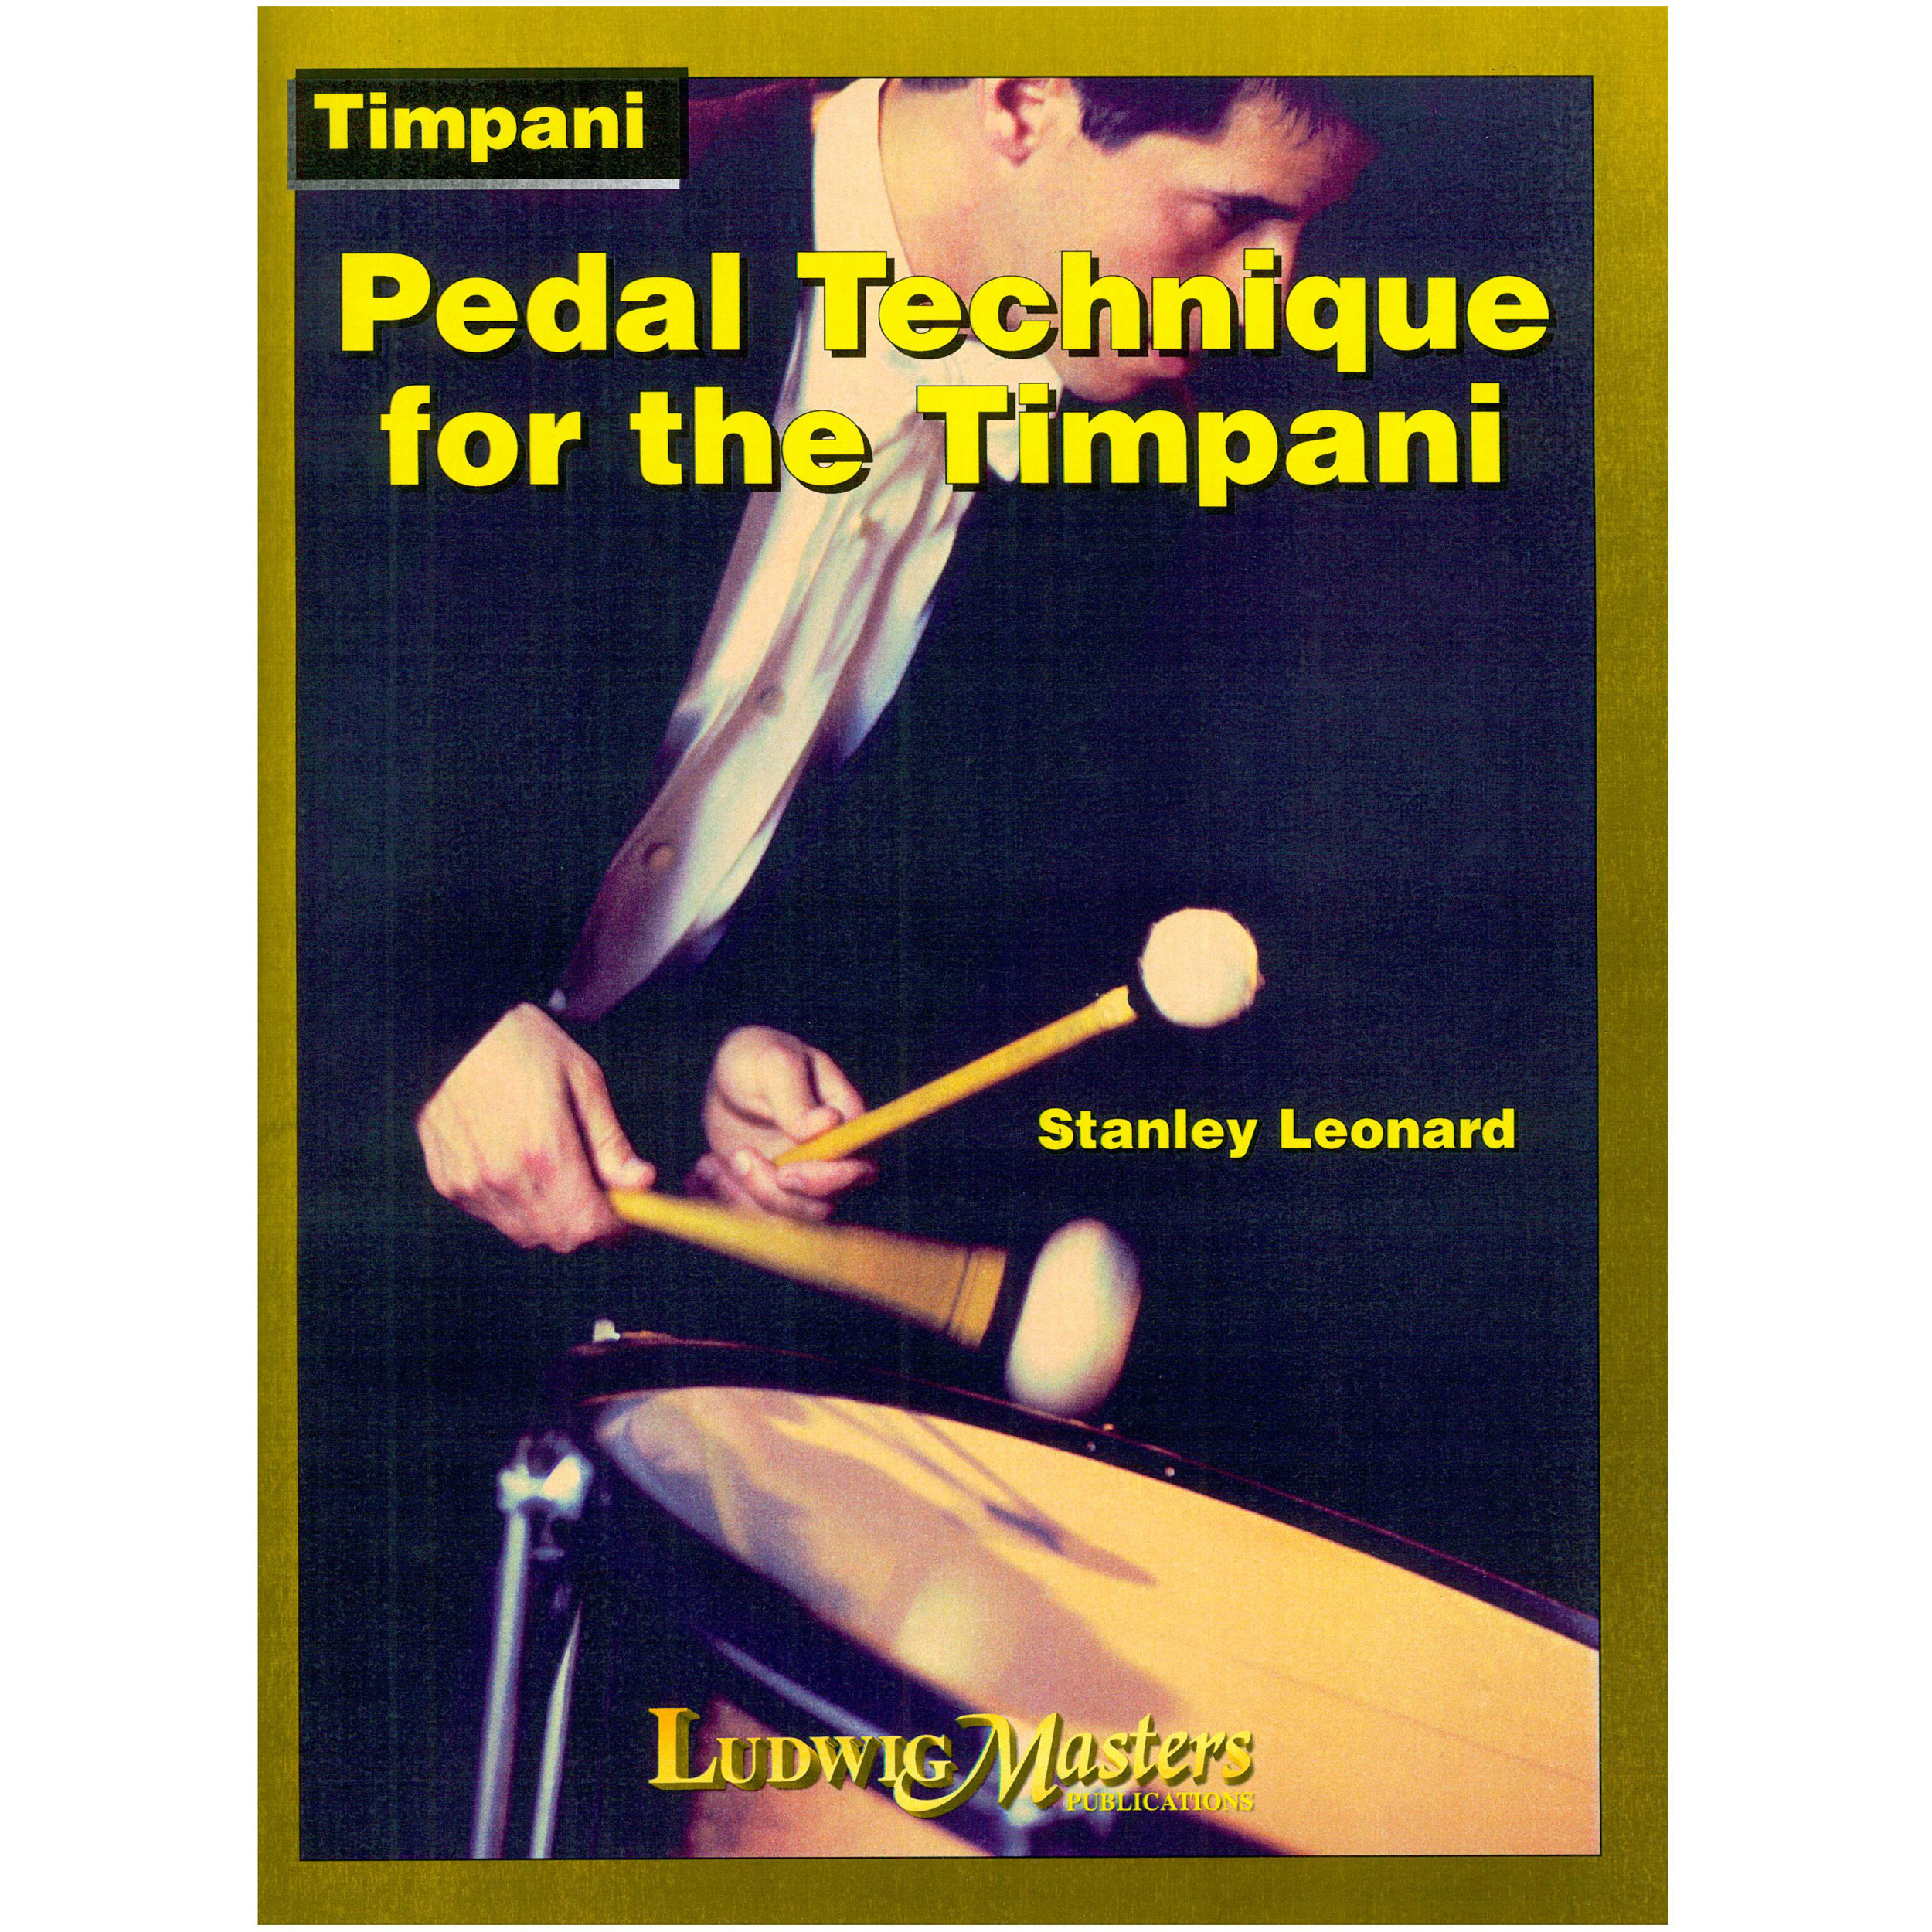 Pedal Technique for Timpani by Stanley Leonard